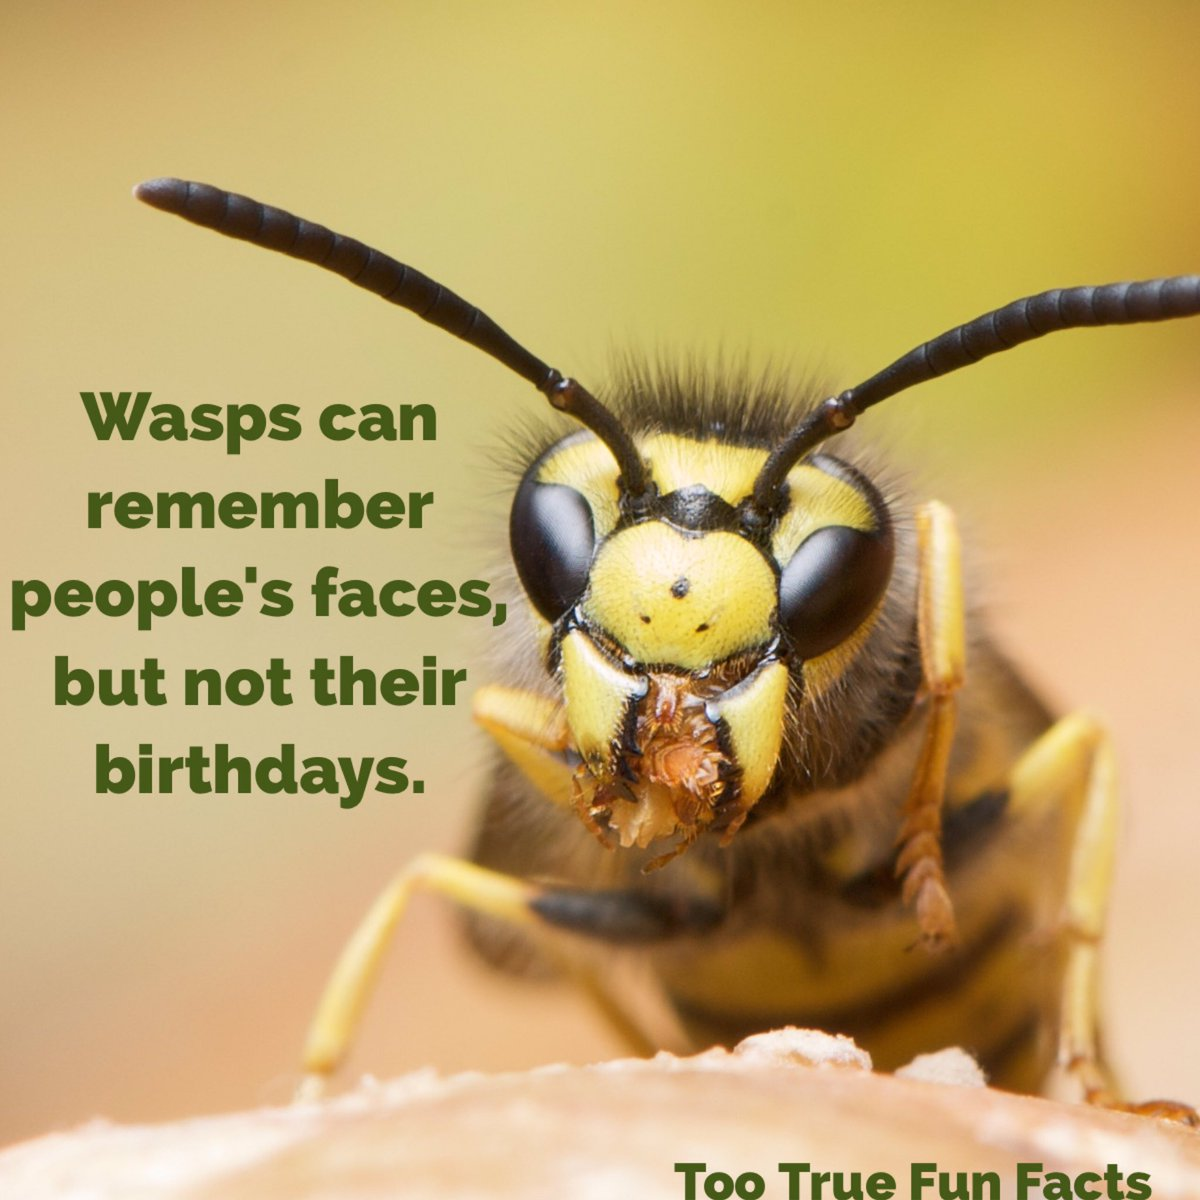 Interesting facts about insects. Amazing insects